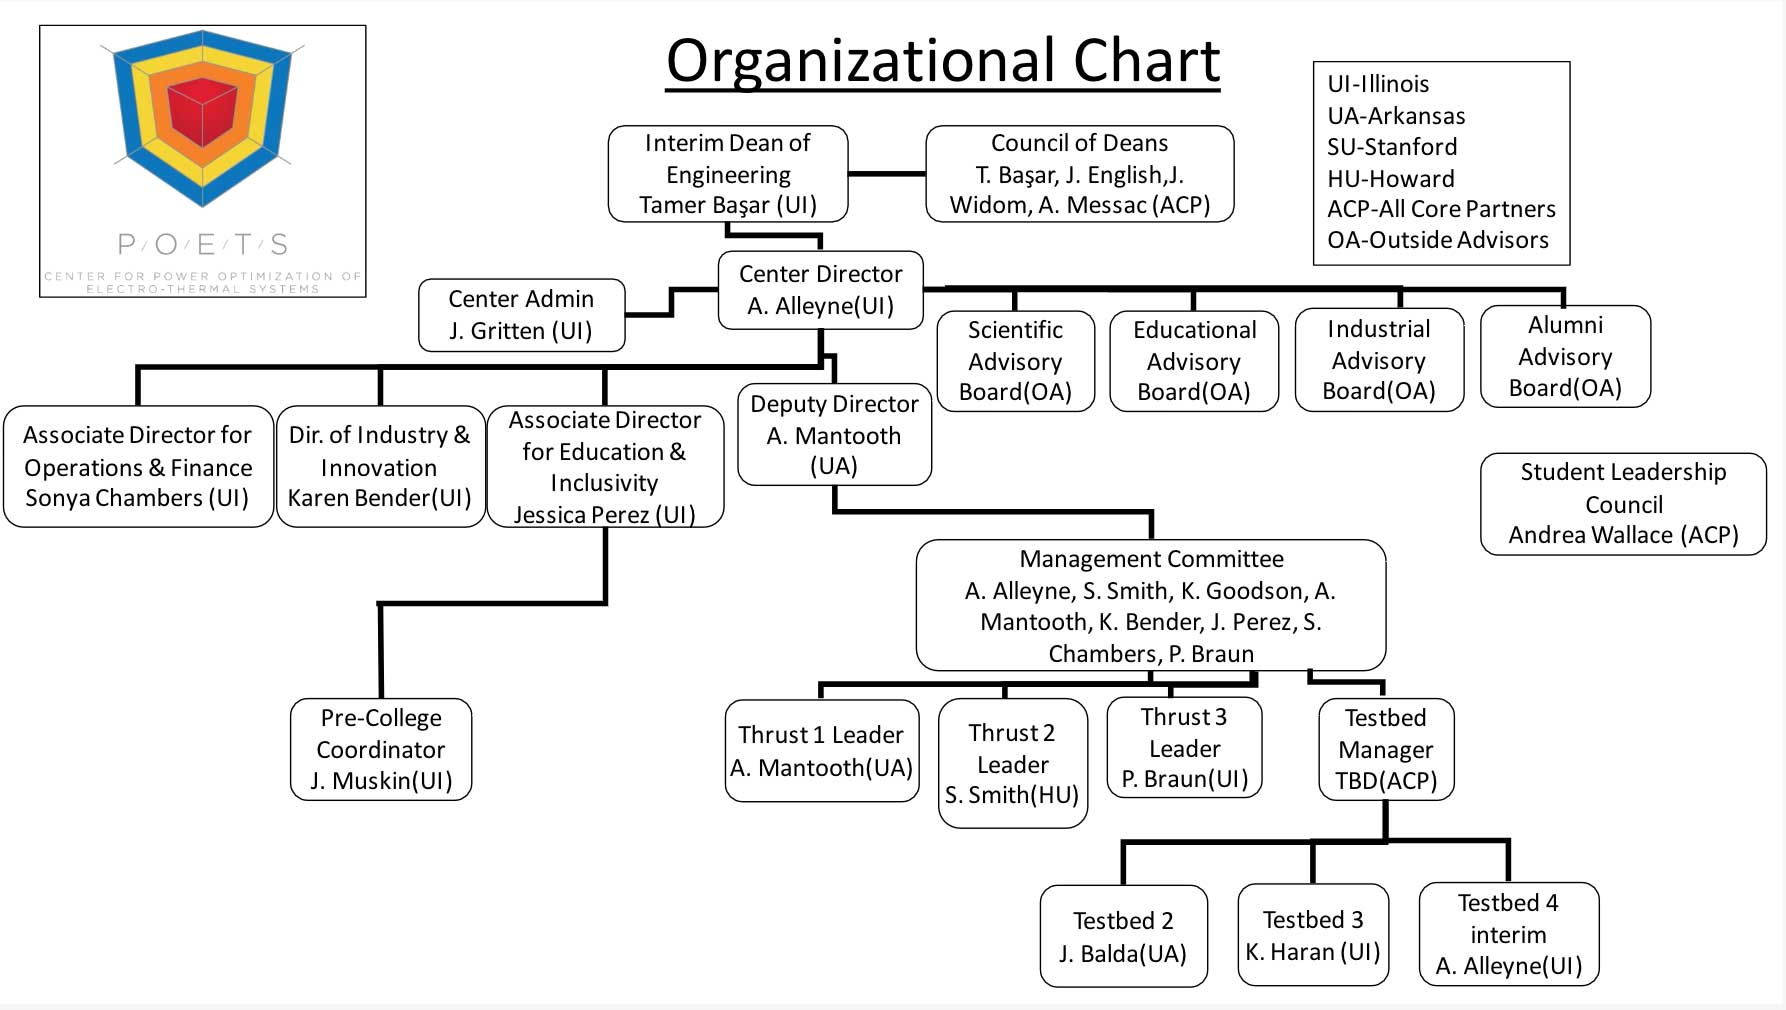 Organizational Chart for POETS